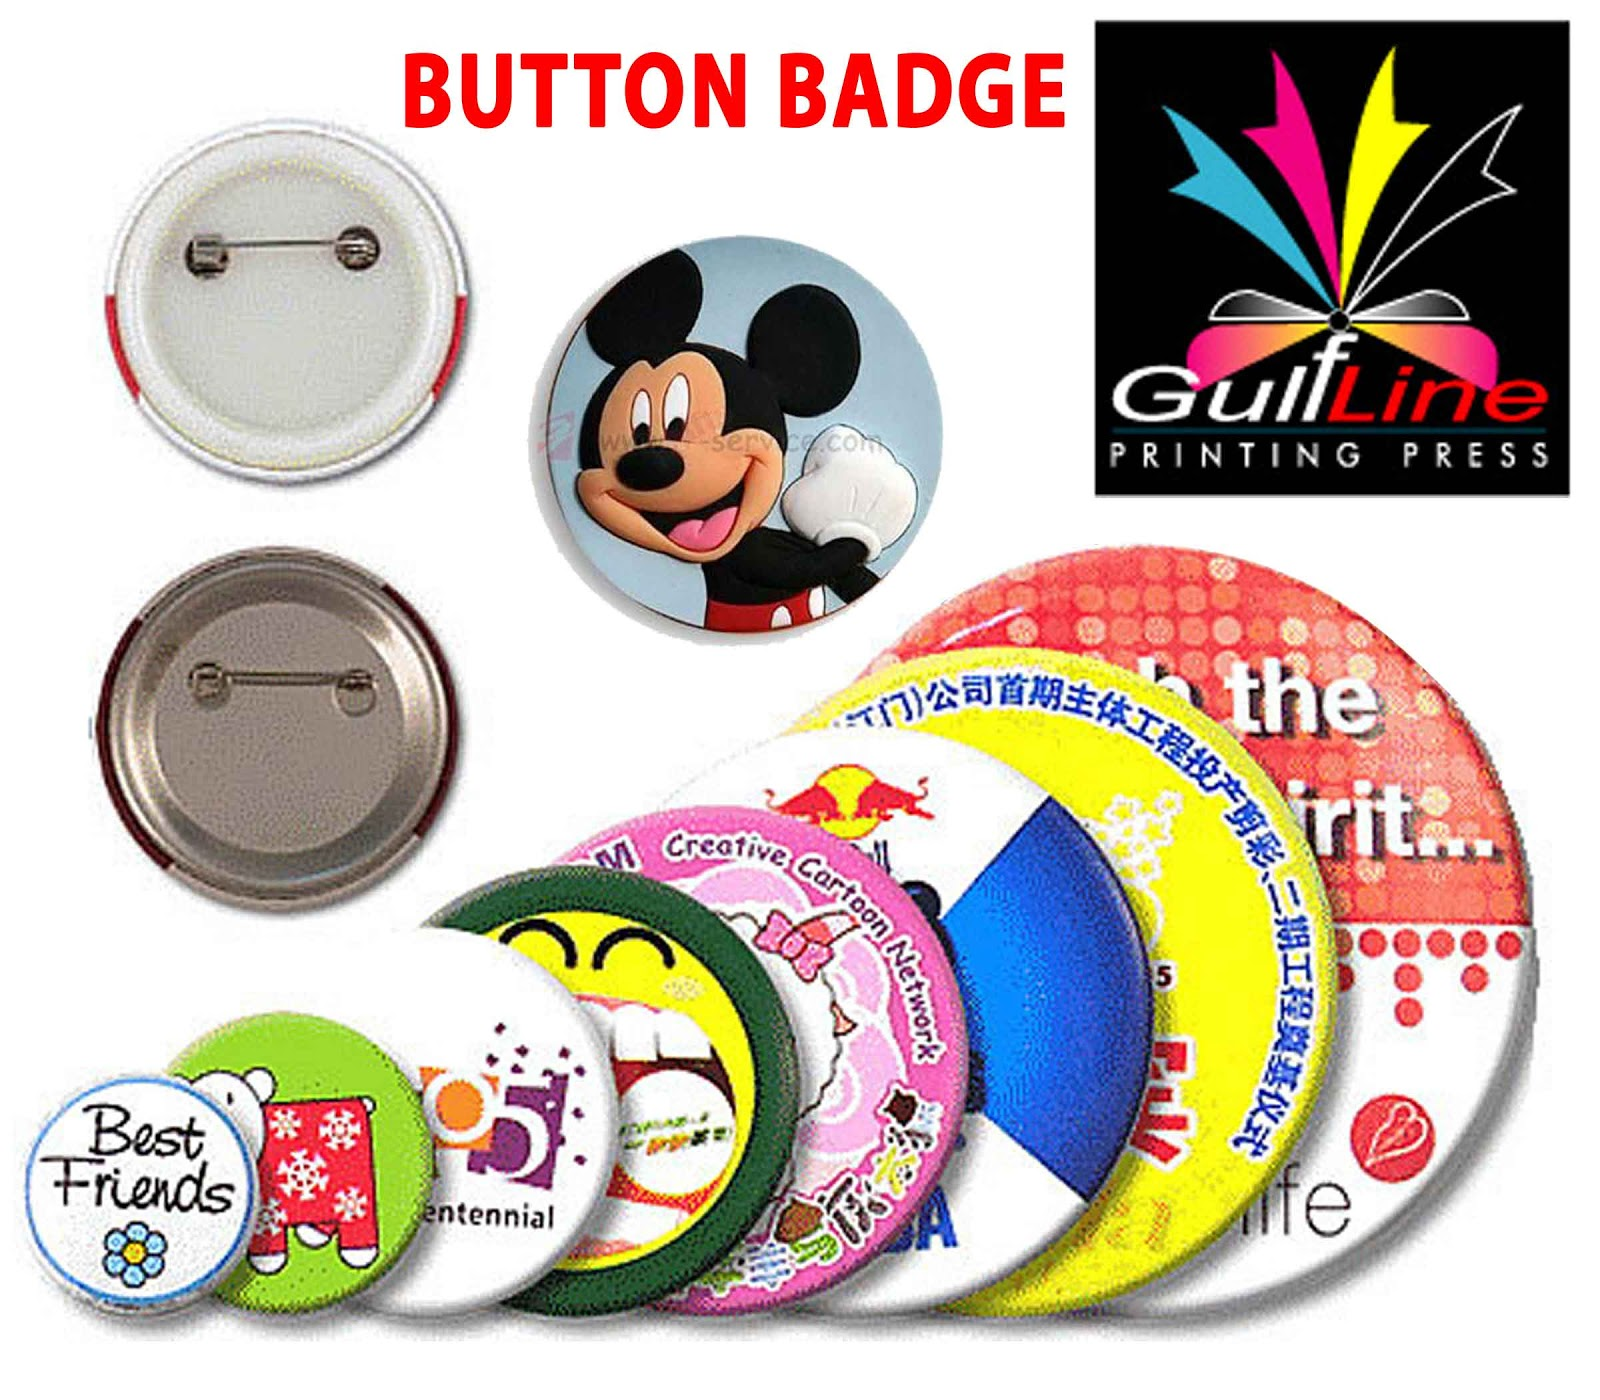 Gulfline: Need Quality Printing In Gulf ???: Button Badges